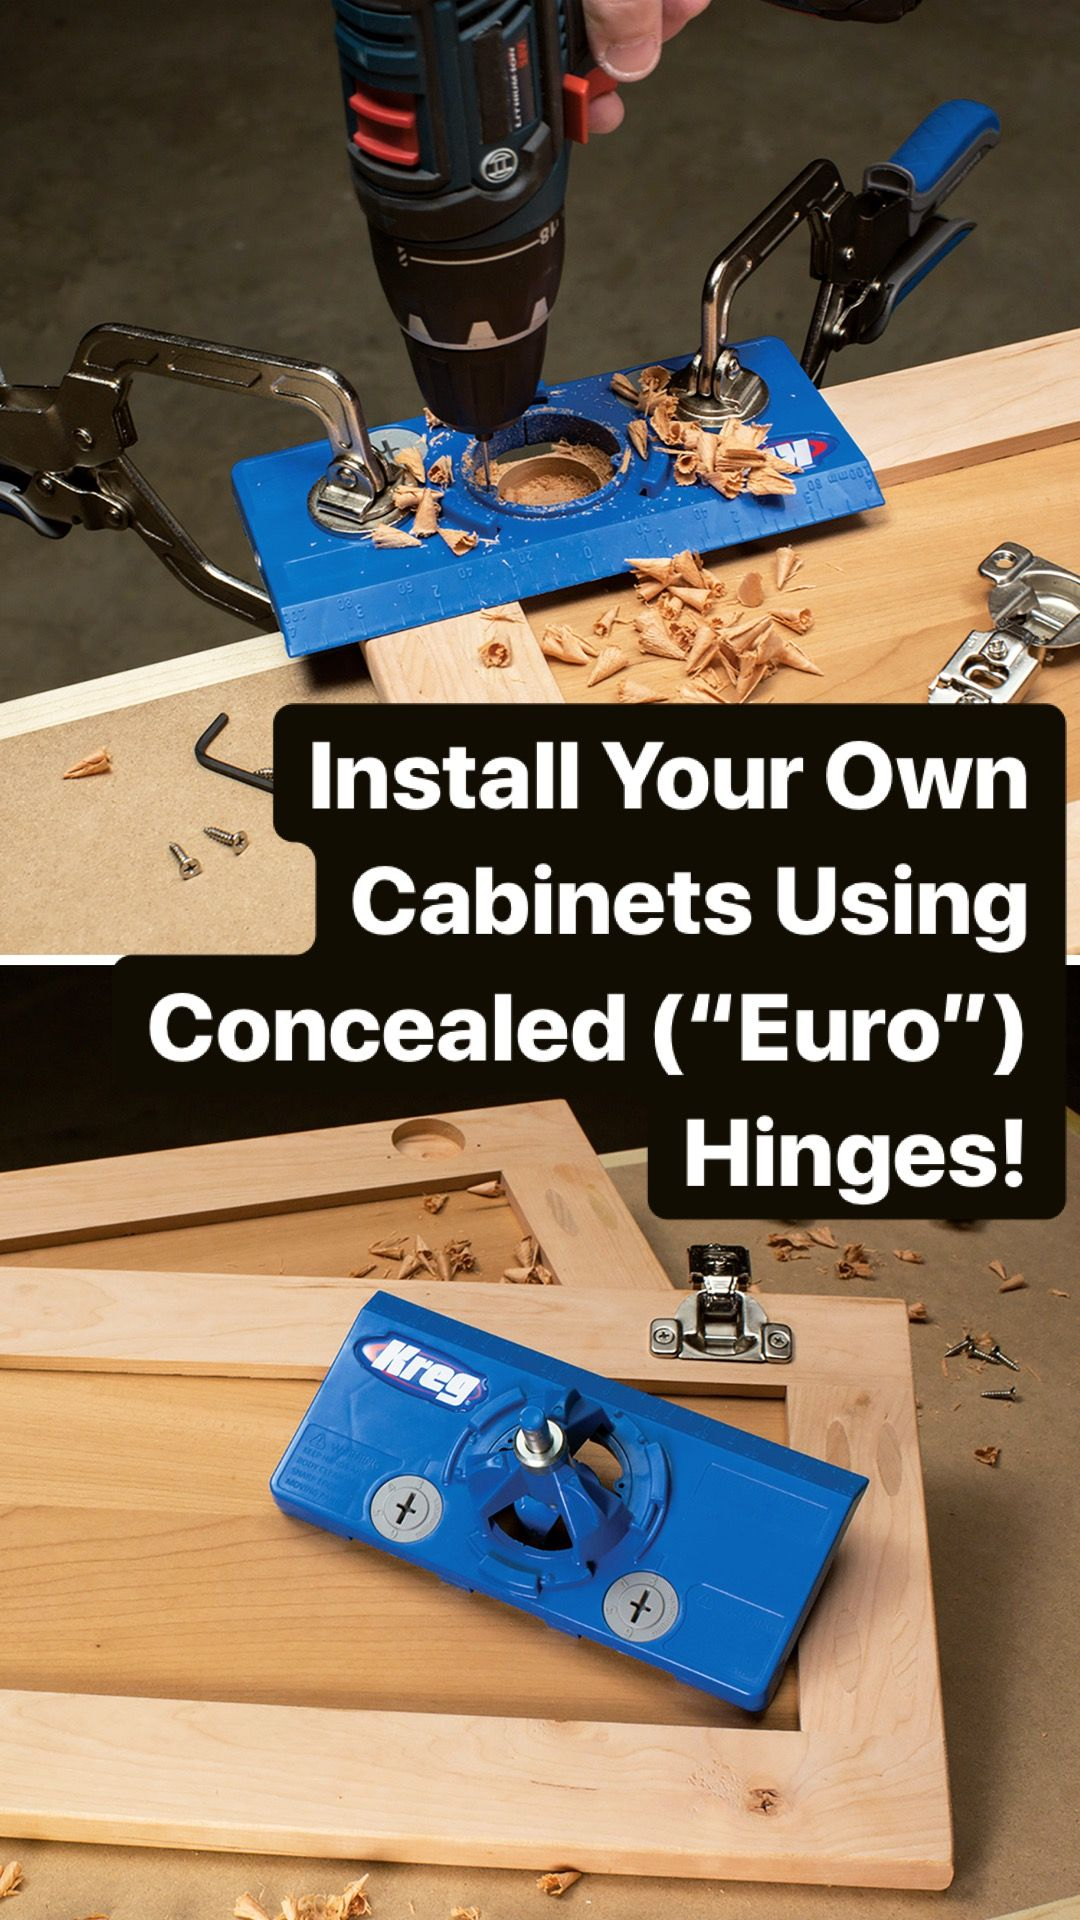 Install Your Own Diy Cabinets Using Concealed Euro Hinges Kid Bathroom Decor Concealed Hinges Installing Cabinets